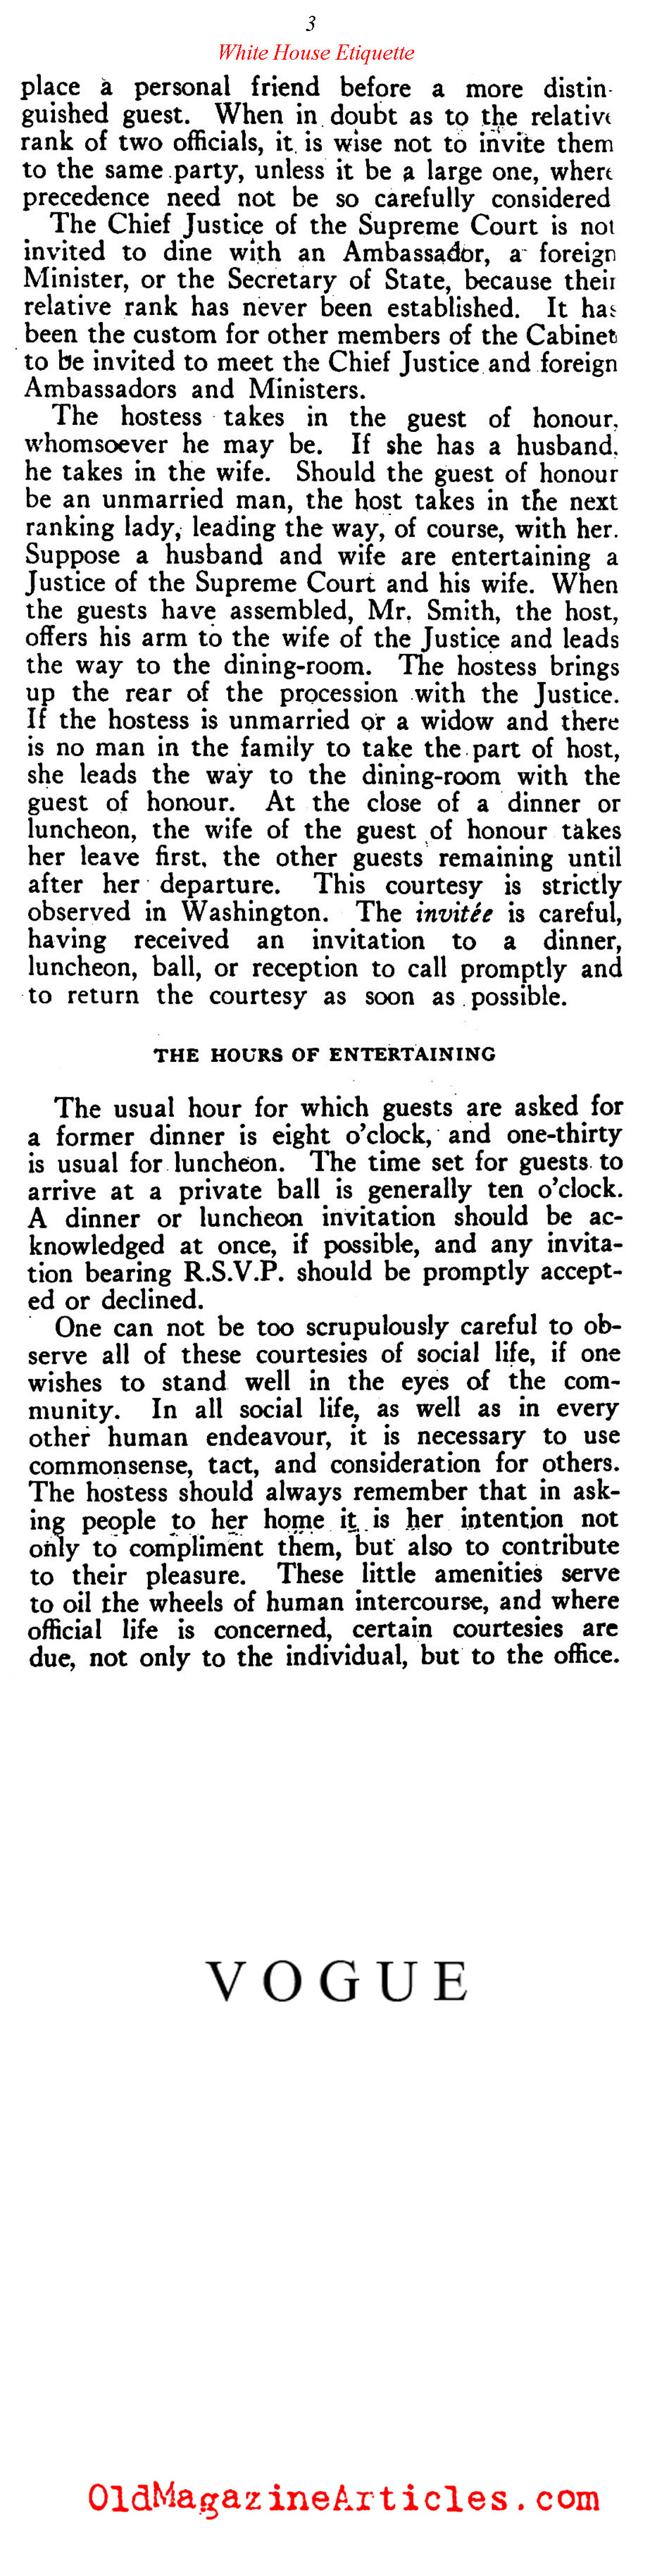 Social Customs in Washington, D.C. (Vogue Magazine, 1921)